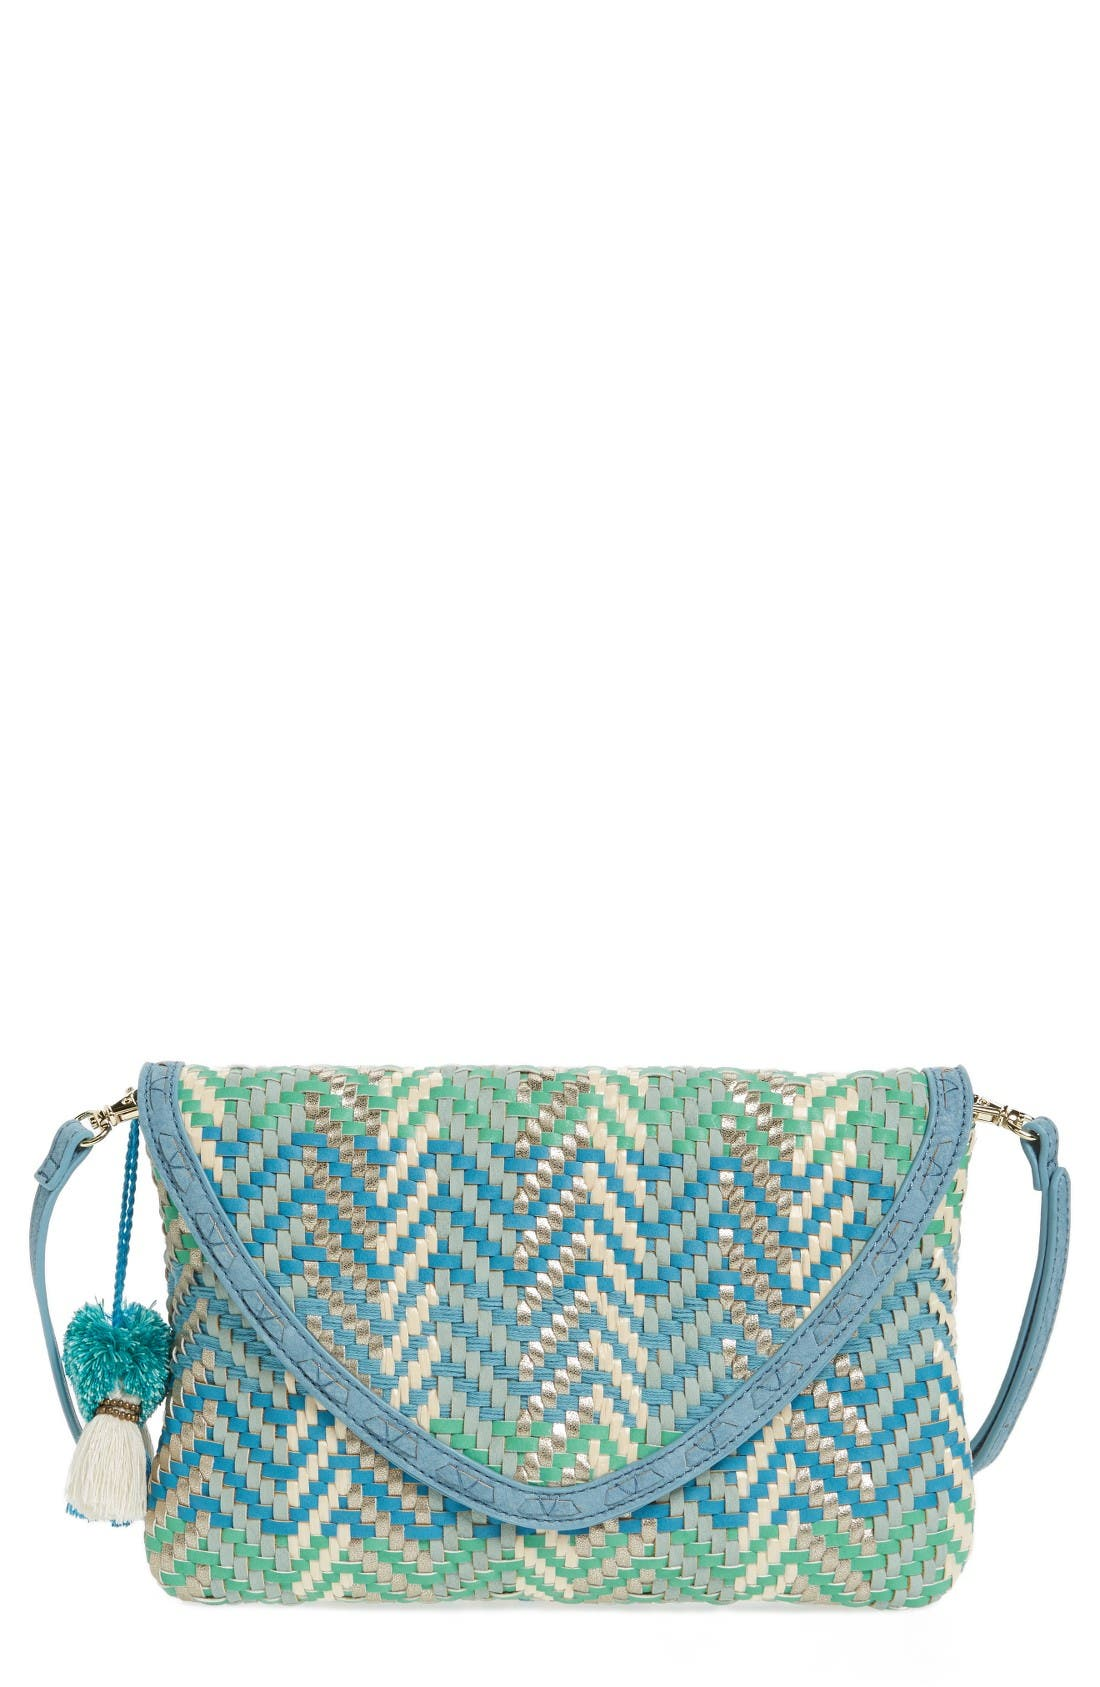 Main Image - Steven by Steve Madden Woven Crossbody Bag